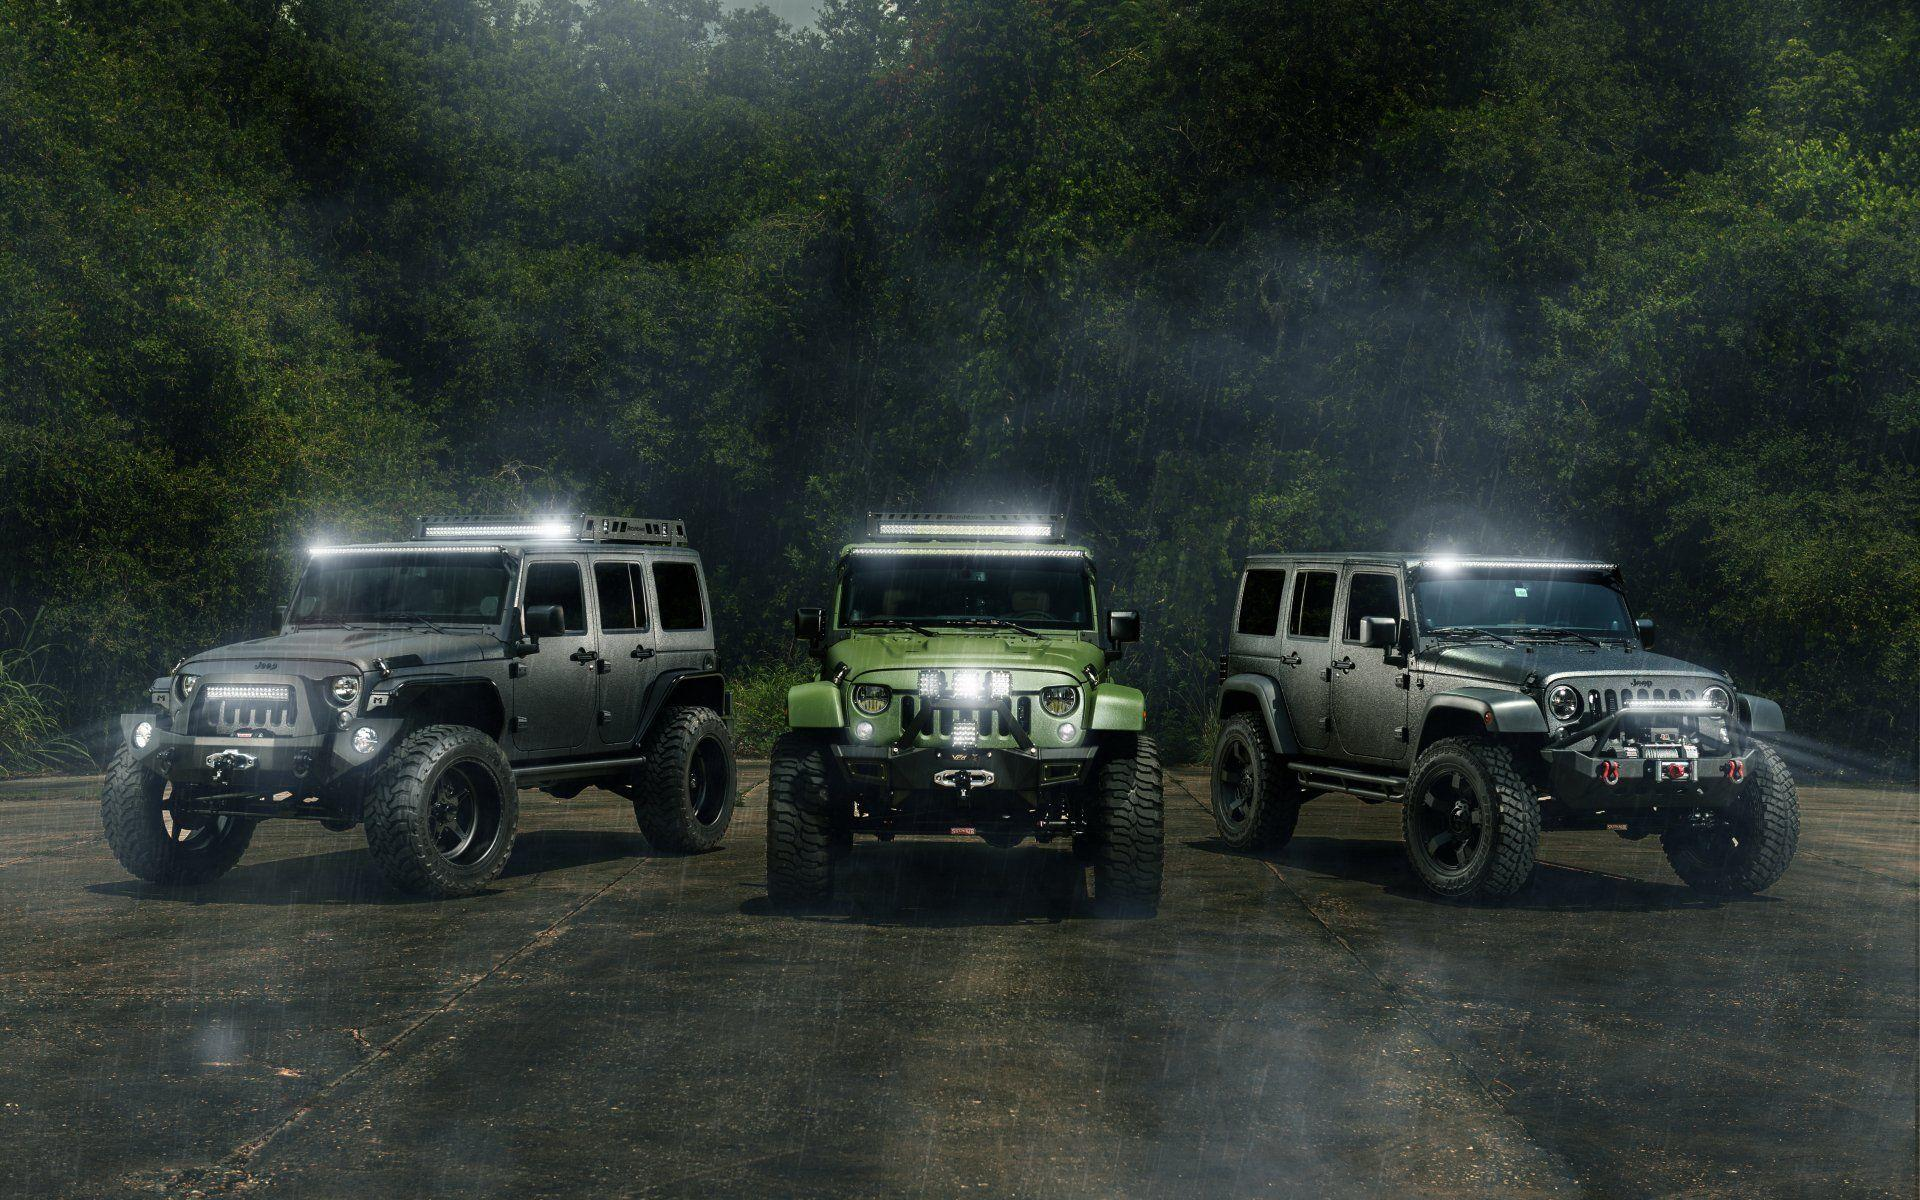 Jeep Wrangler Wallpapers 51+